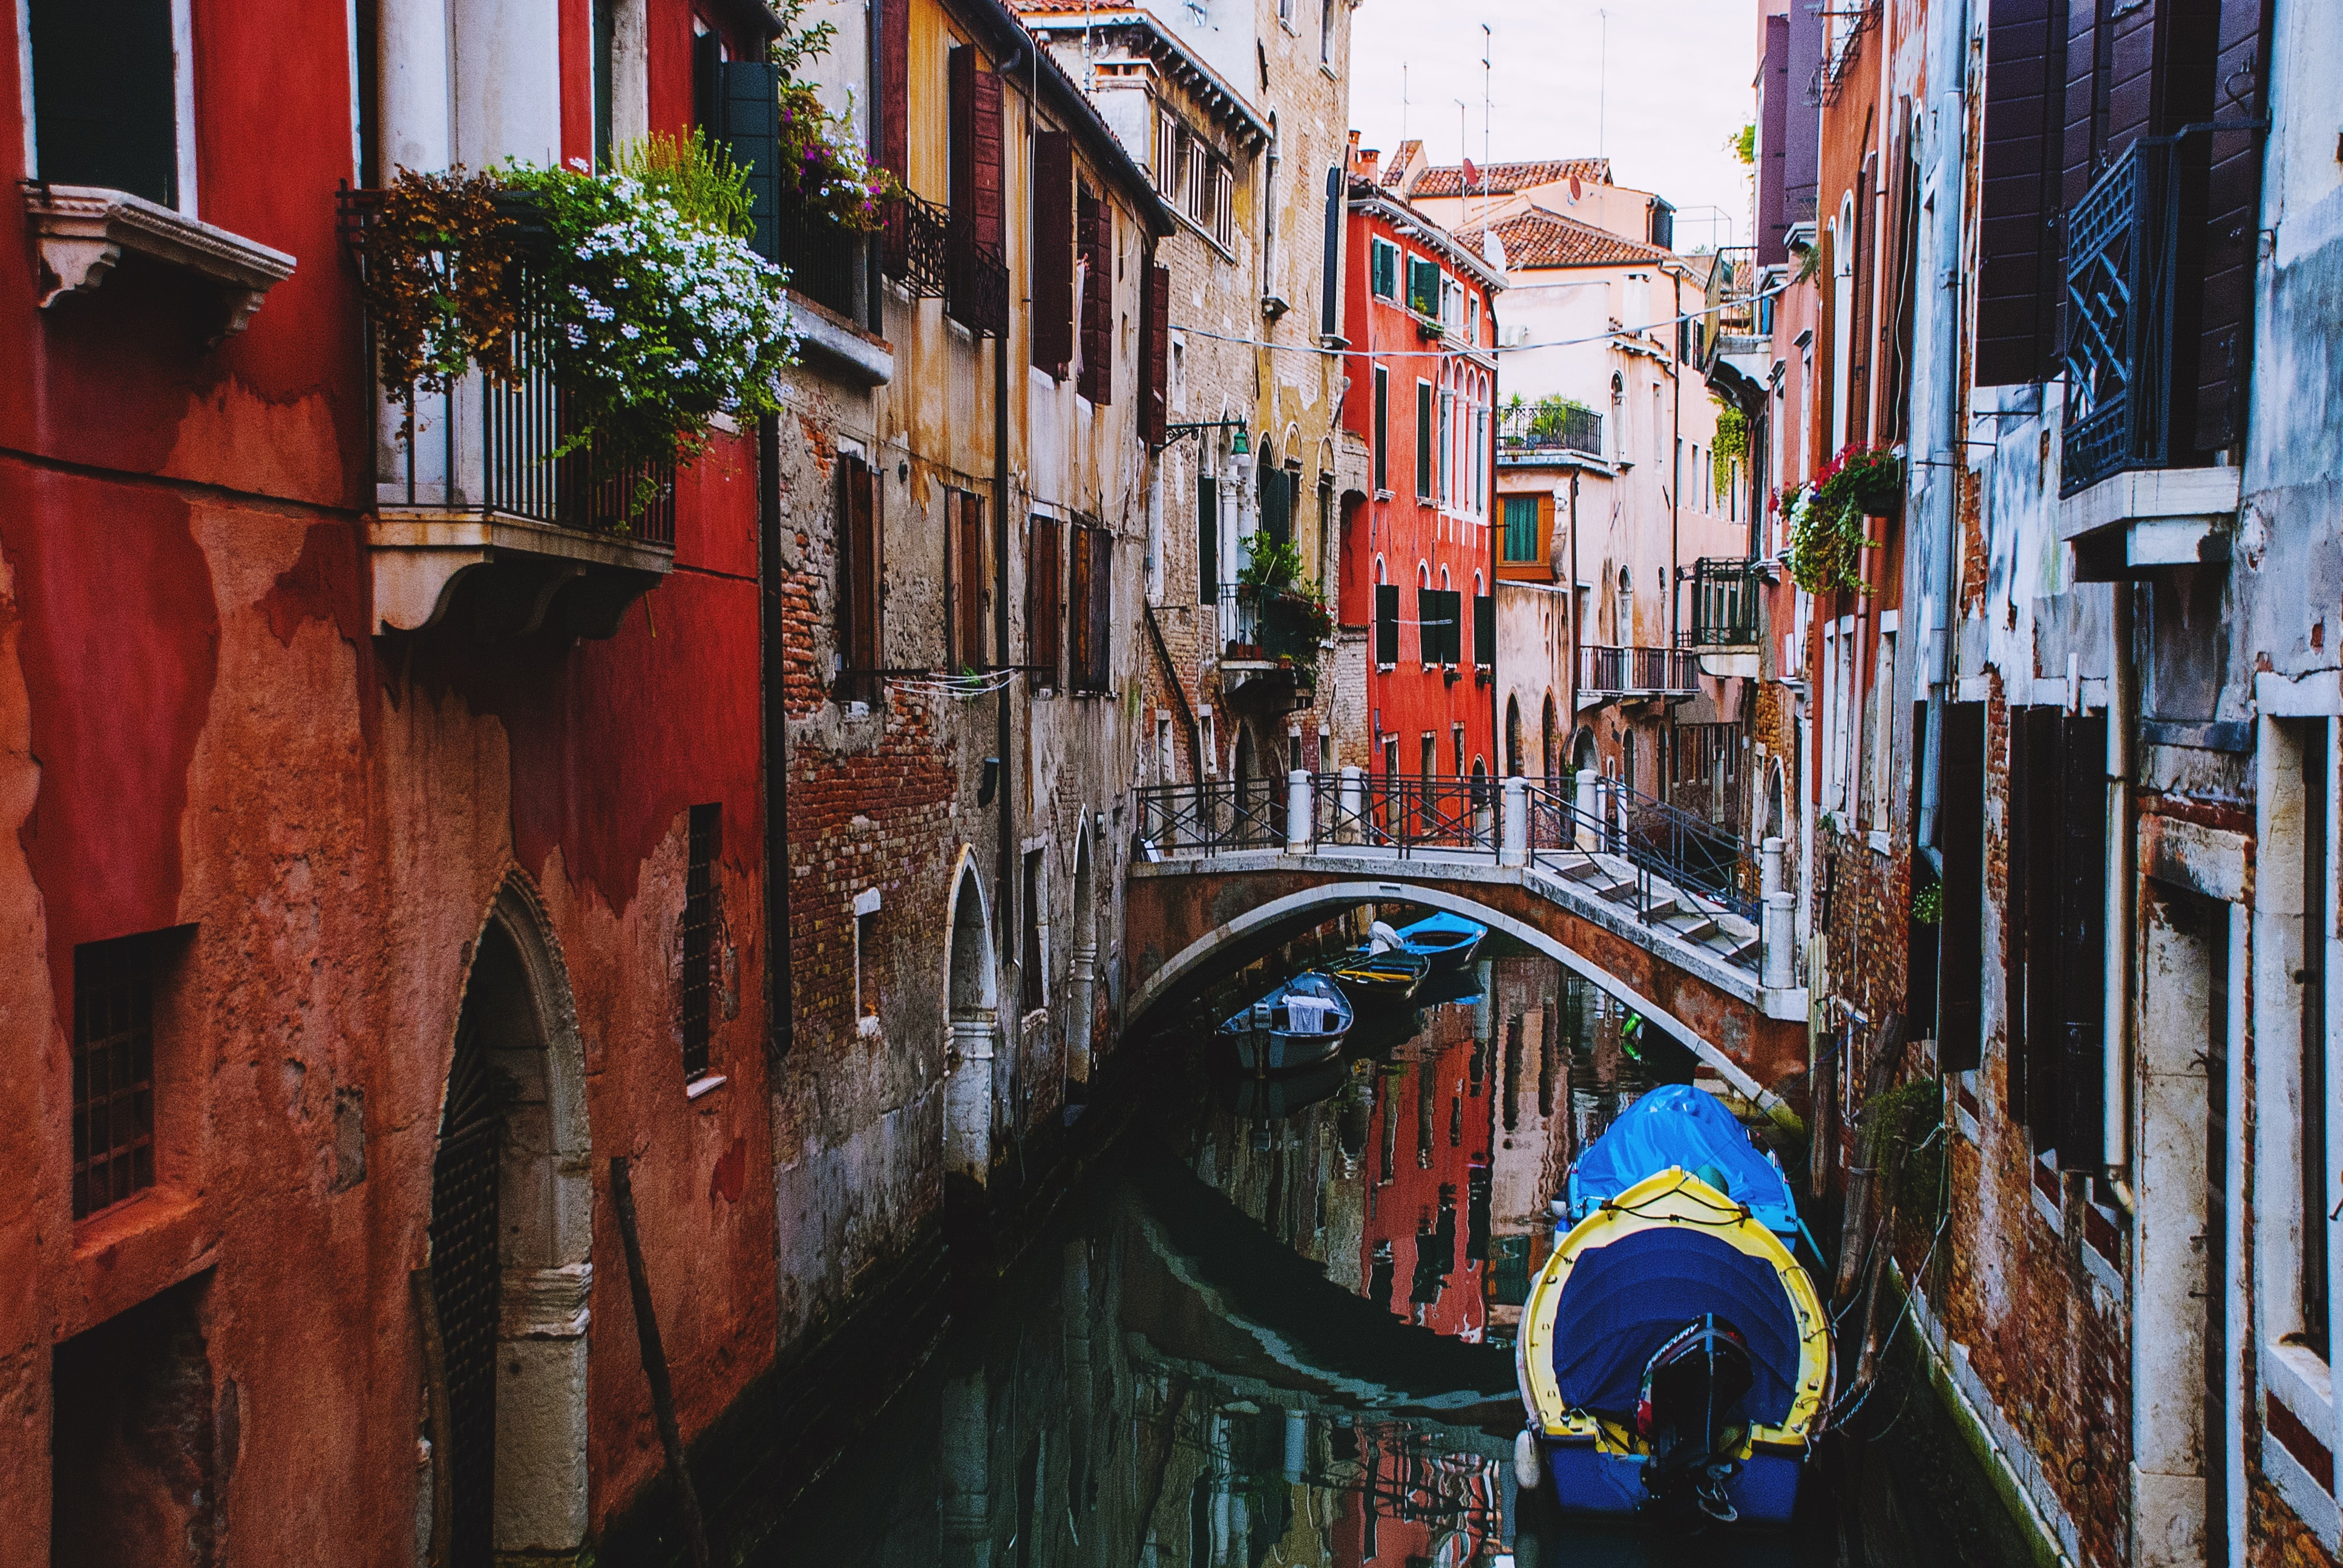 A canal with a bridge between red brick buildings in Venice